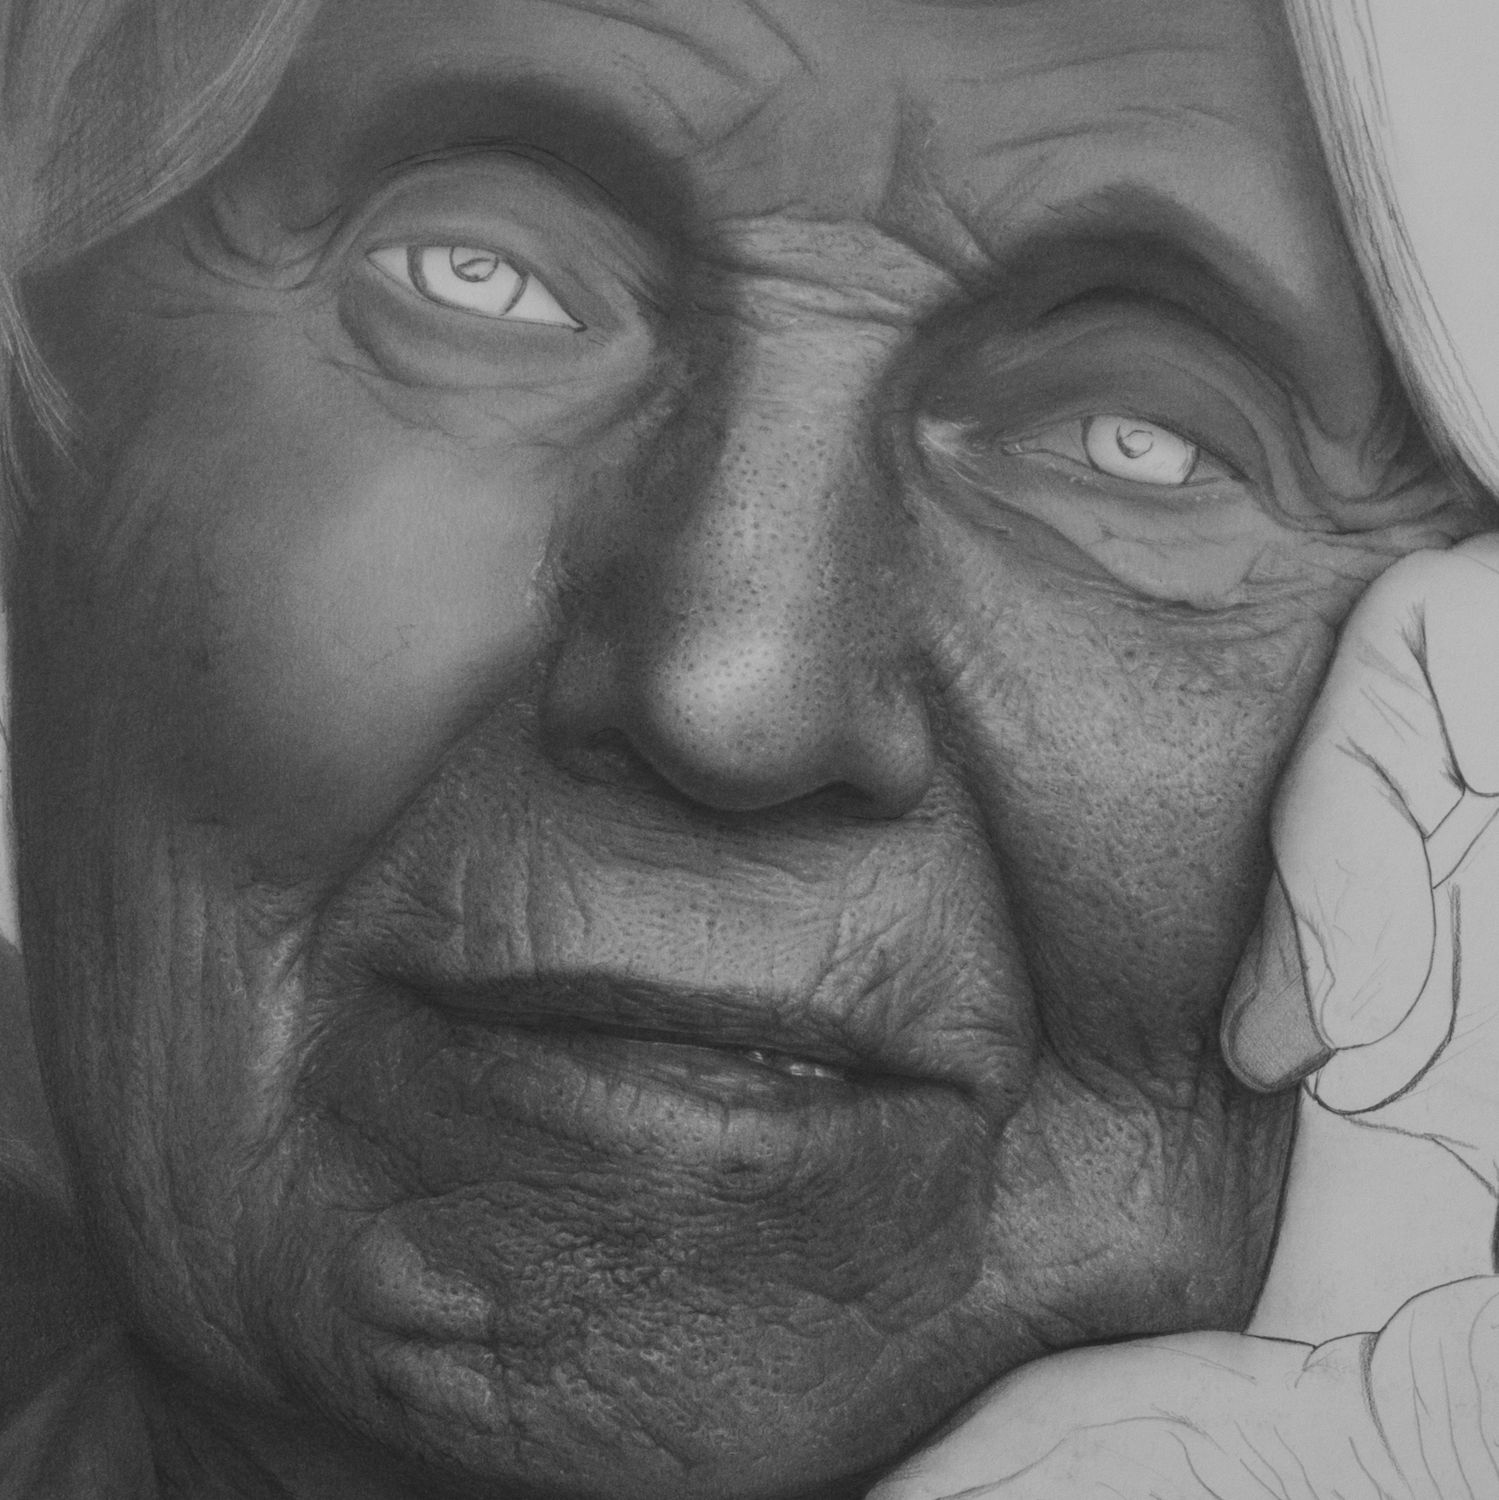 Matriarch Work In Progress. Emma Towers-Evans. Jackson's Painting Prize.